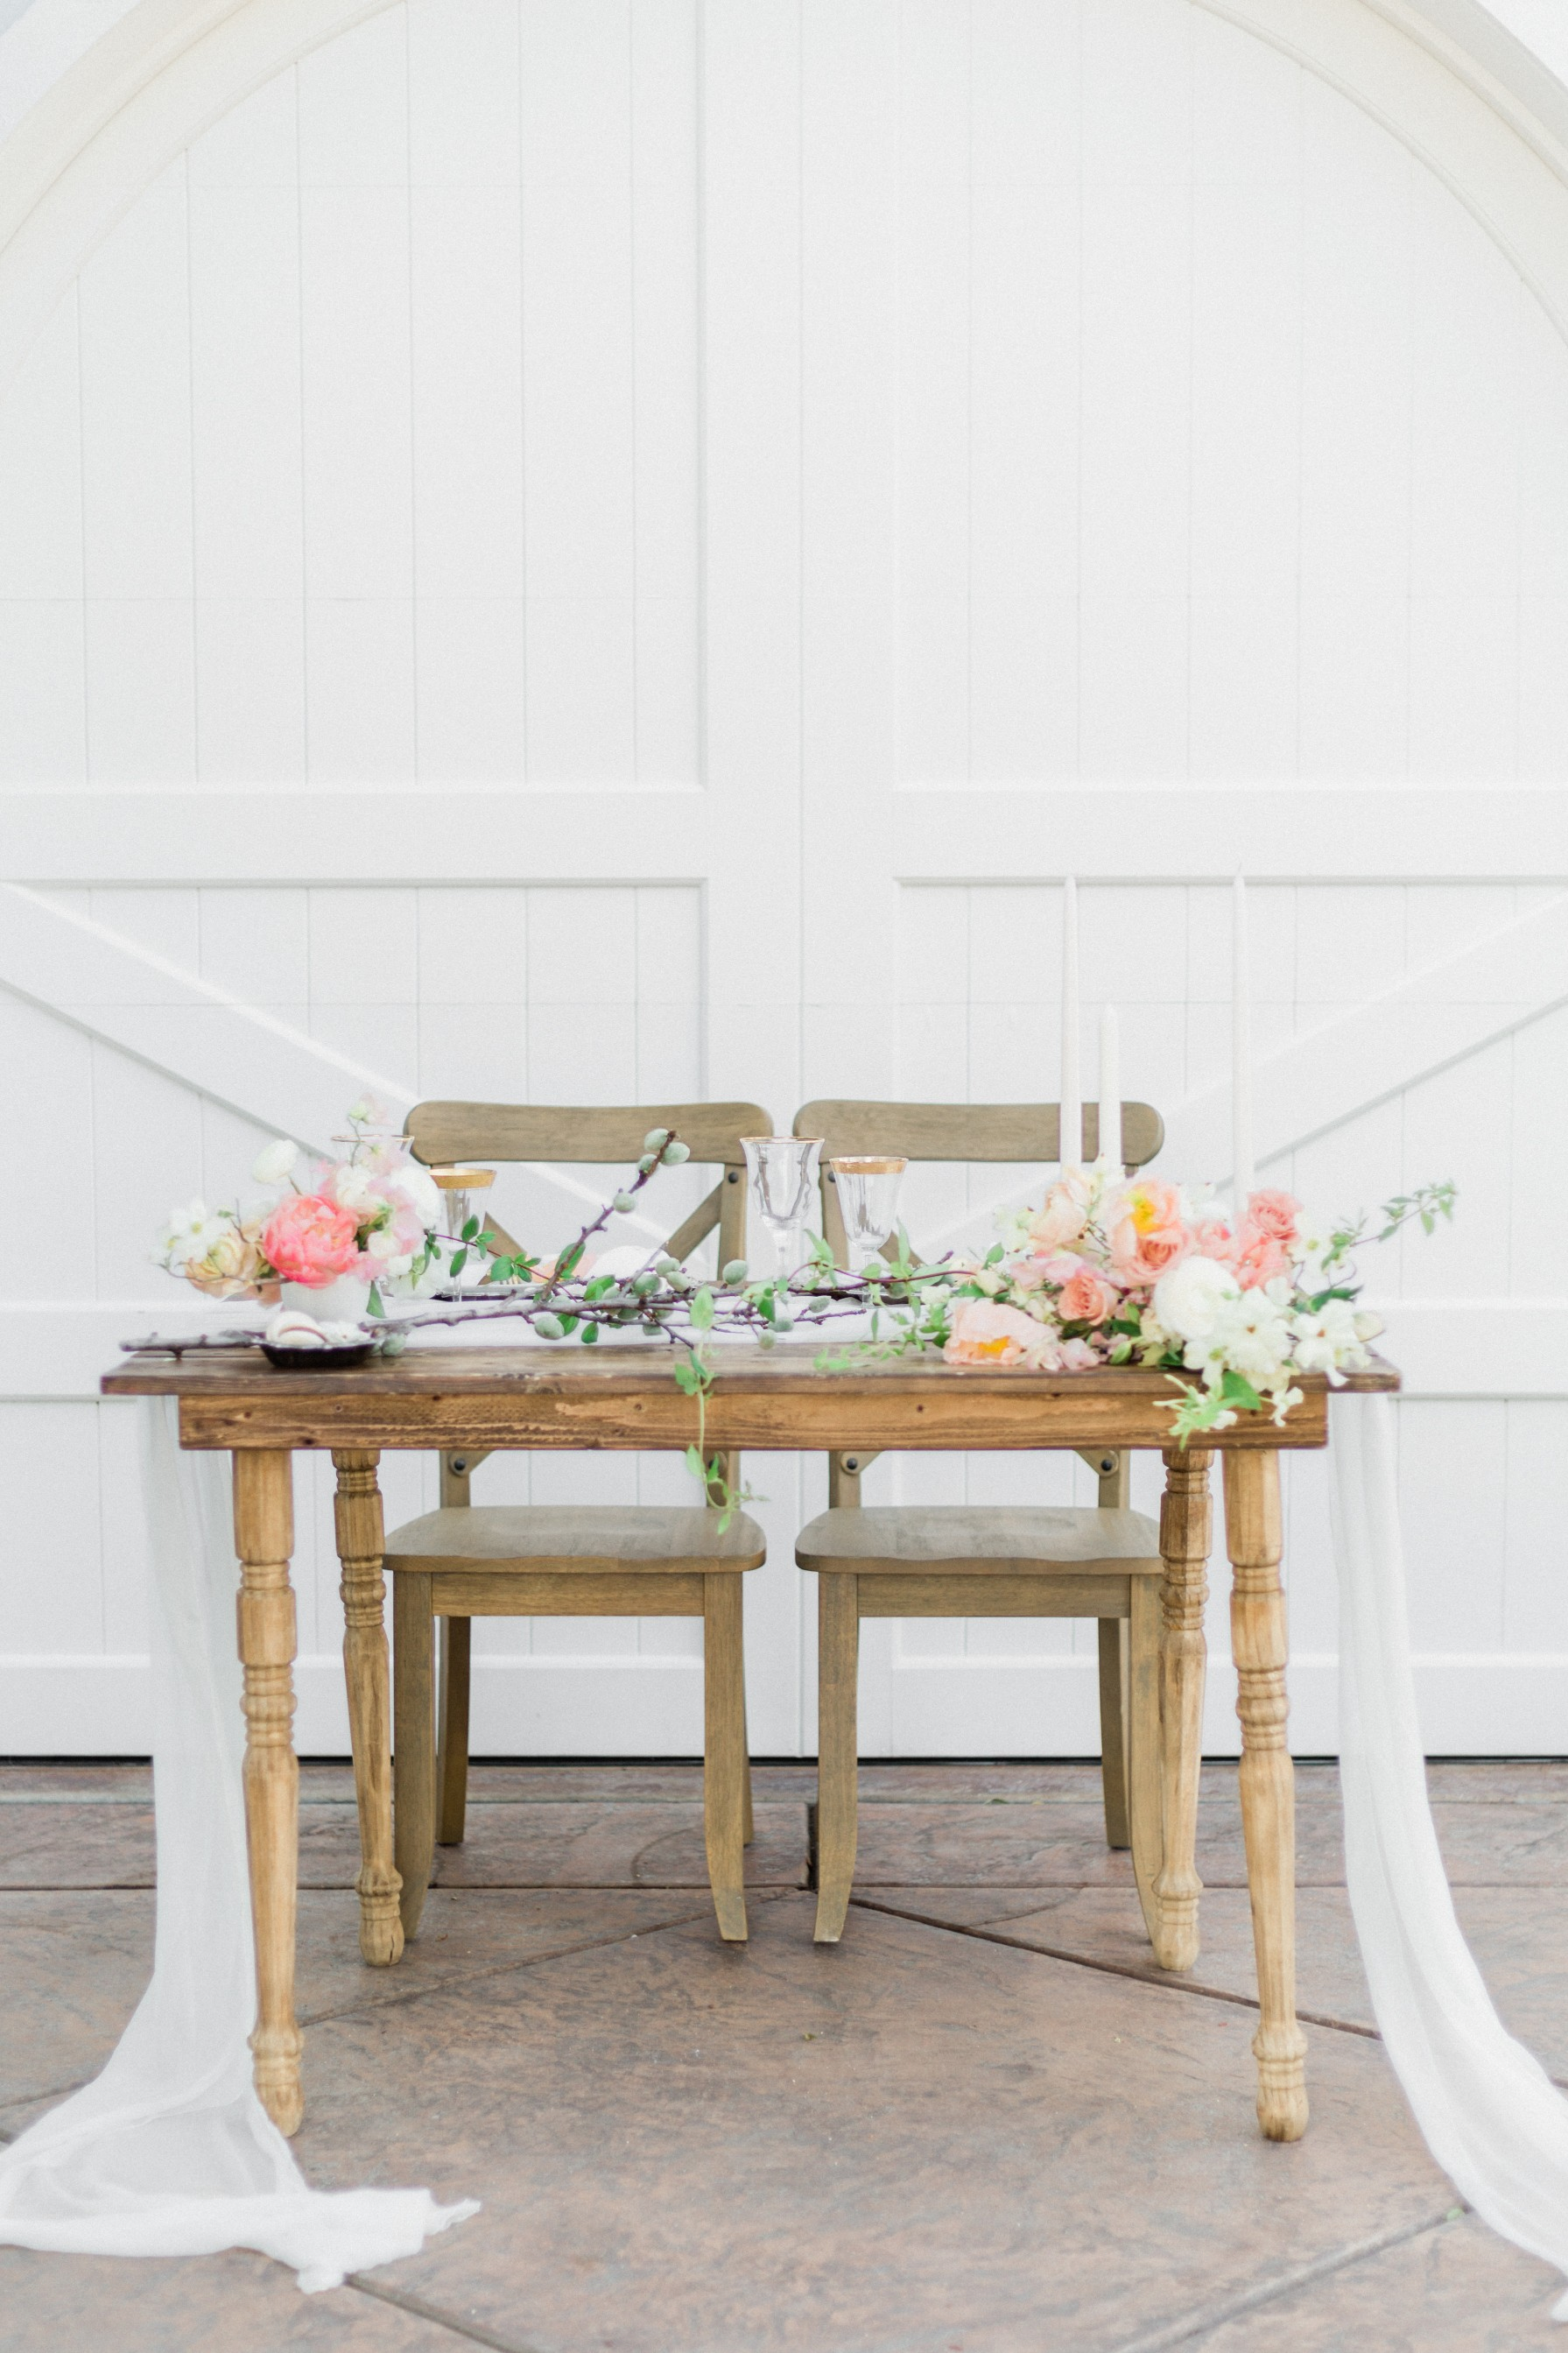 Simple wooden table designed with silk chiffon table runners and floral arrangements for spring wedding inspiration tablescape